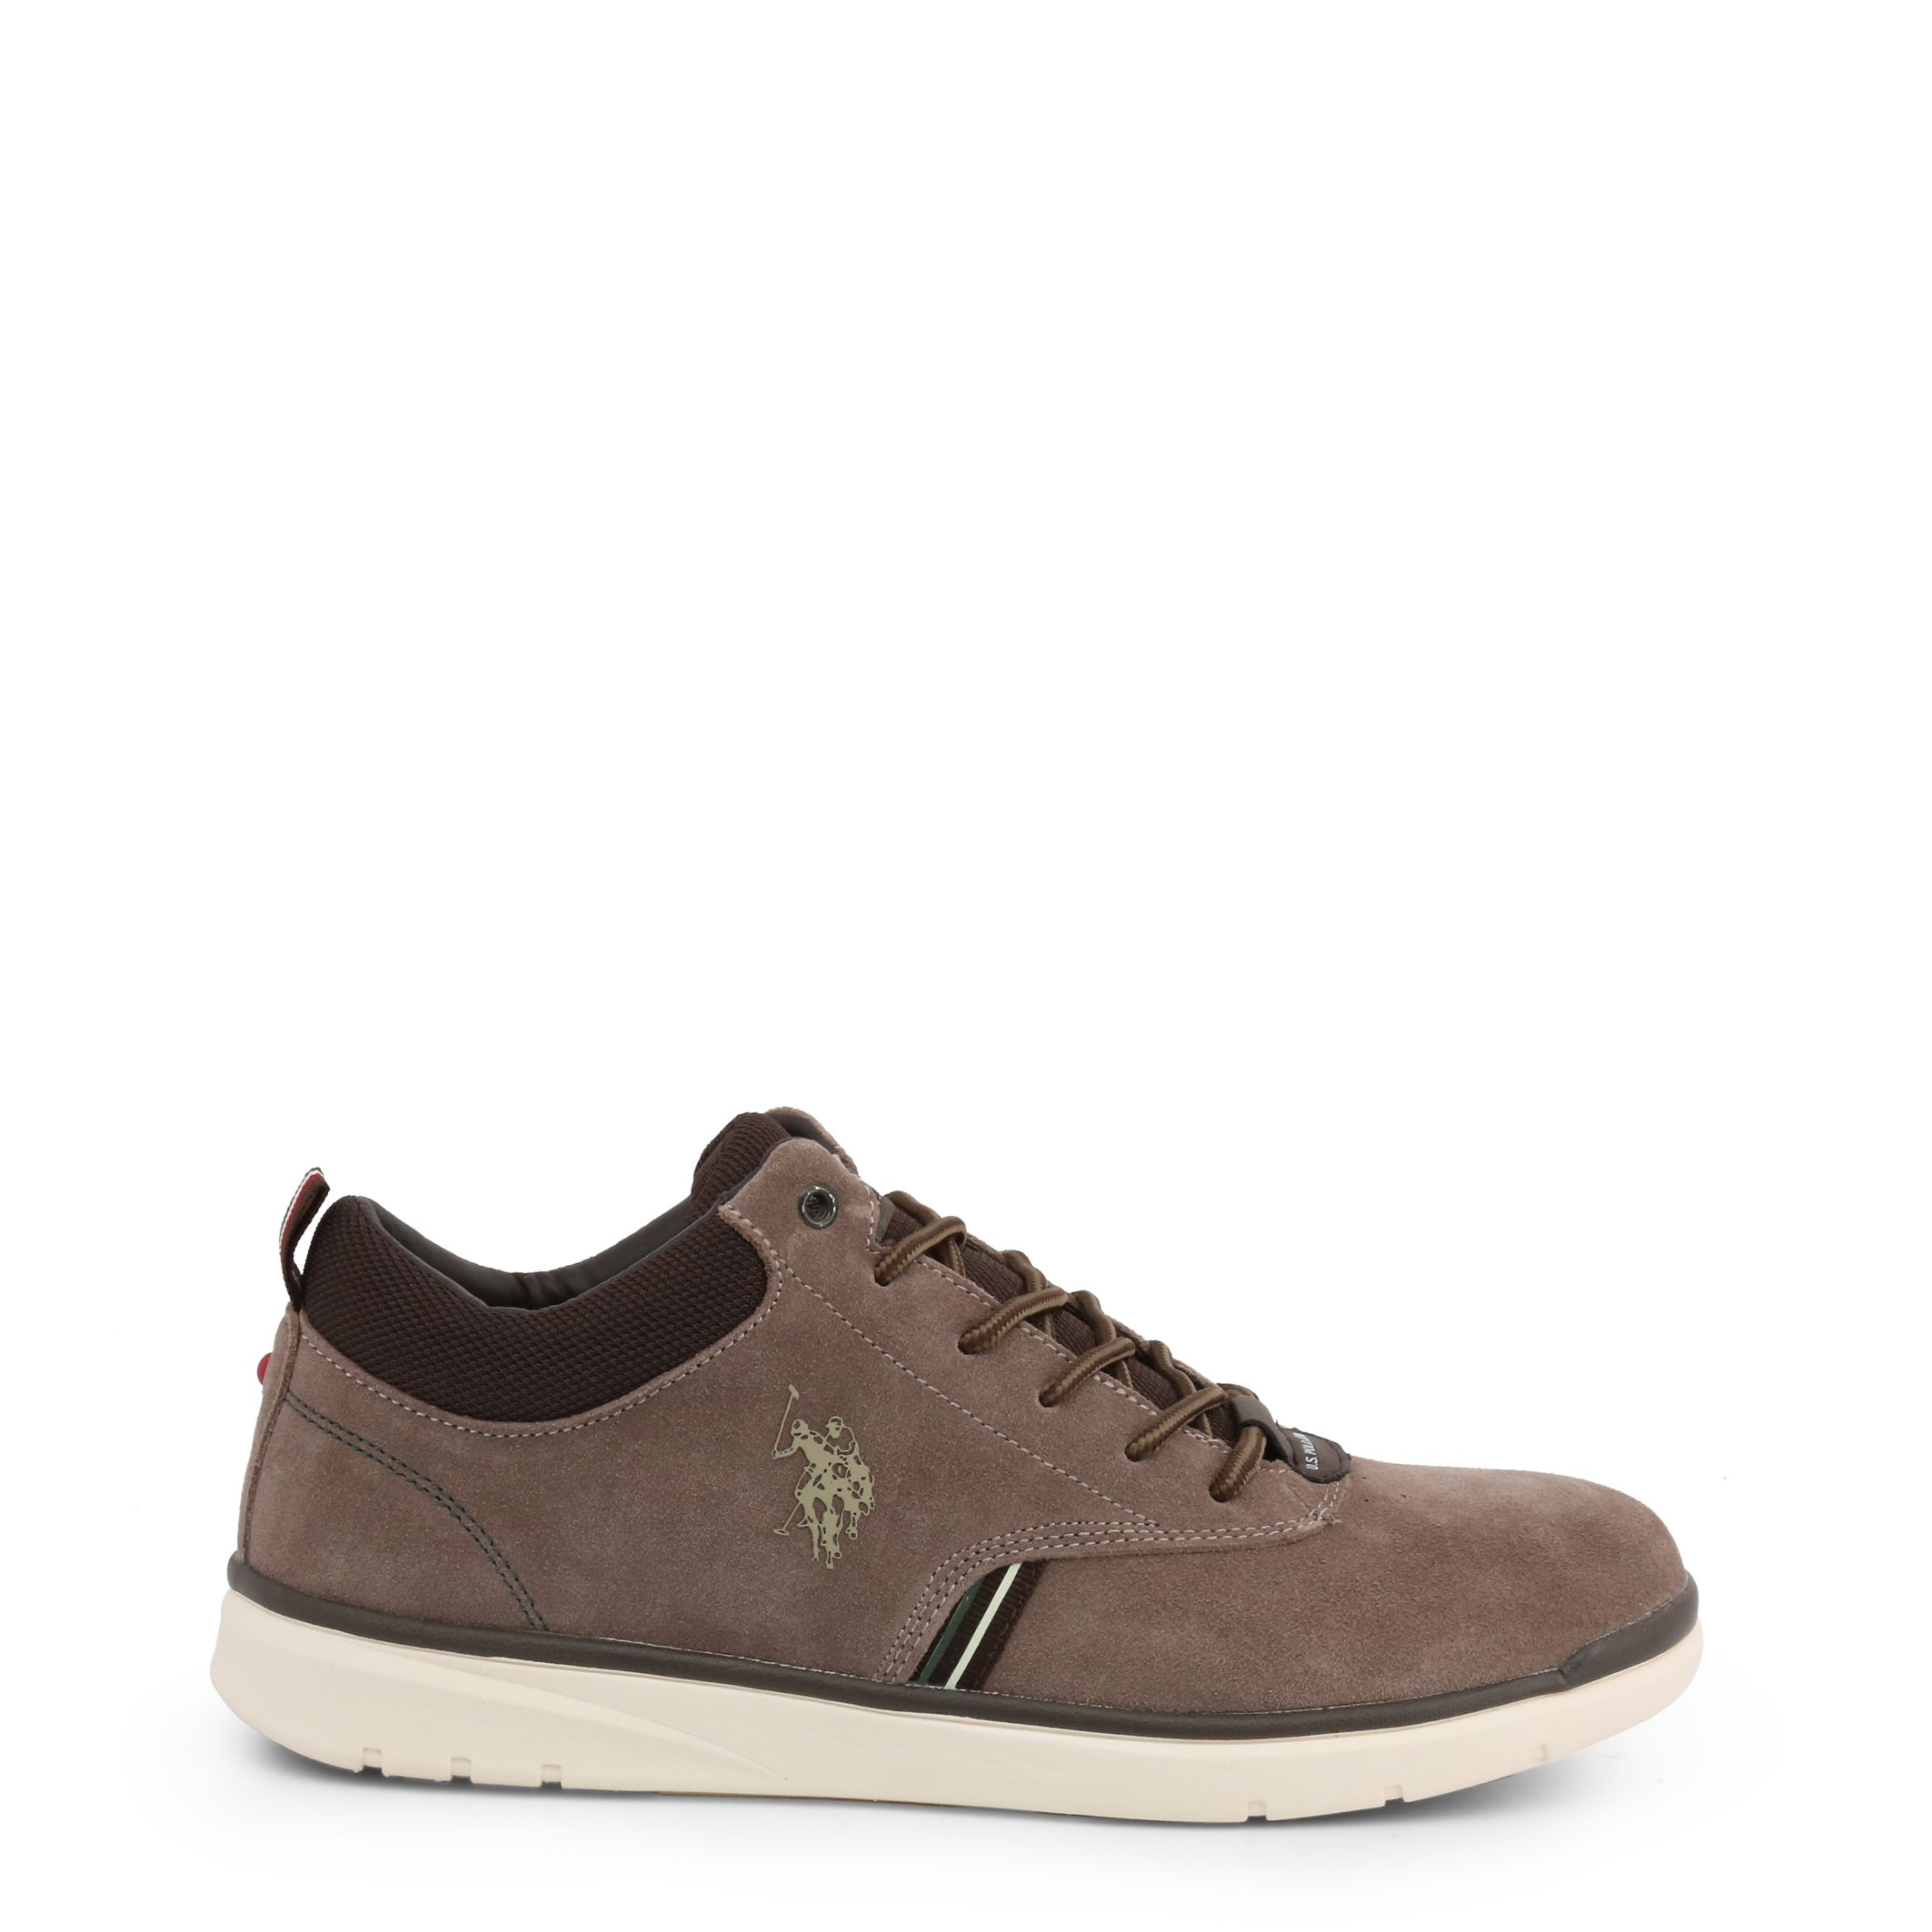 U.S. Polo Assn. Mens Lace Up